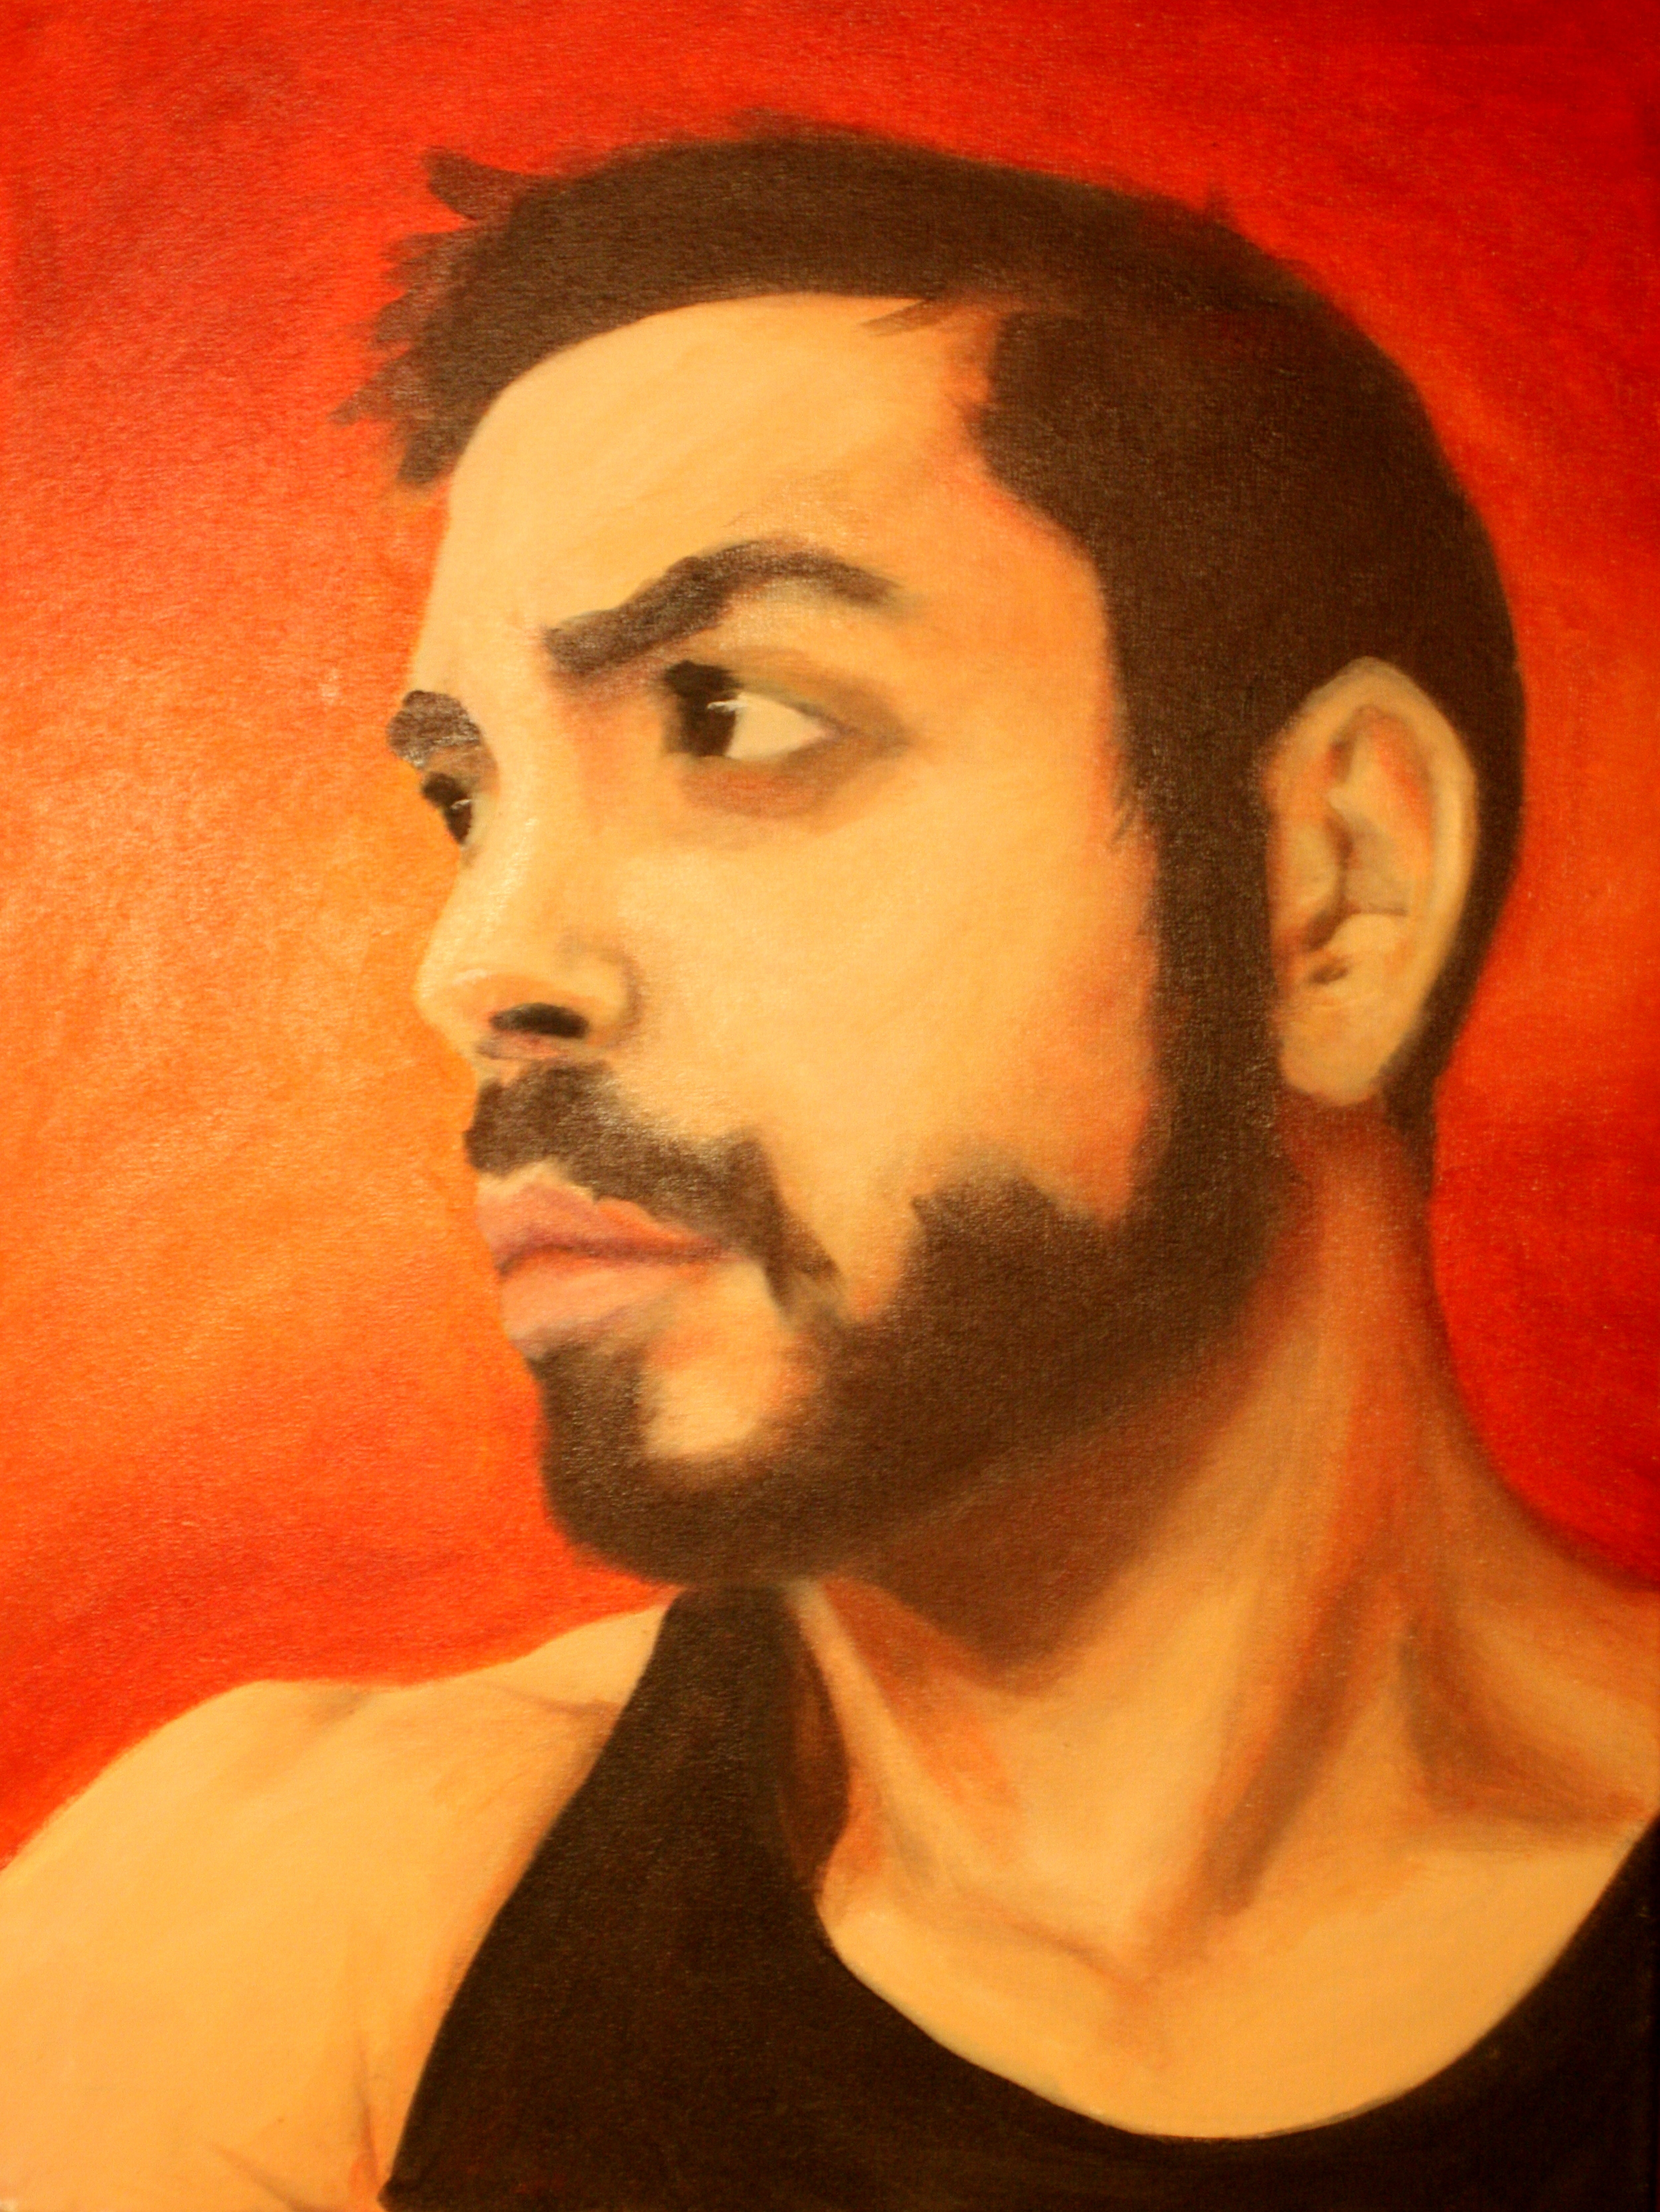 """Self-Portrait, Jose Luis Rodriguez (2010)     Oil on Canvas  30""""H x 24"""" W  Self-portrait is  an oil painting of the artist Jose Luis Rodriguez which shows a sharp  and detailed analysis of the physical lines and texture of the upper  body. It captures the emotional expression through light and powerful  colors."""